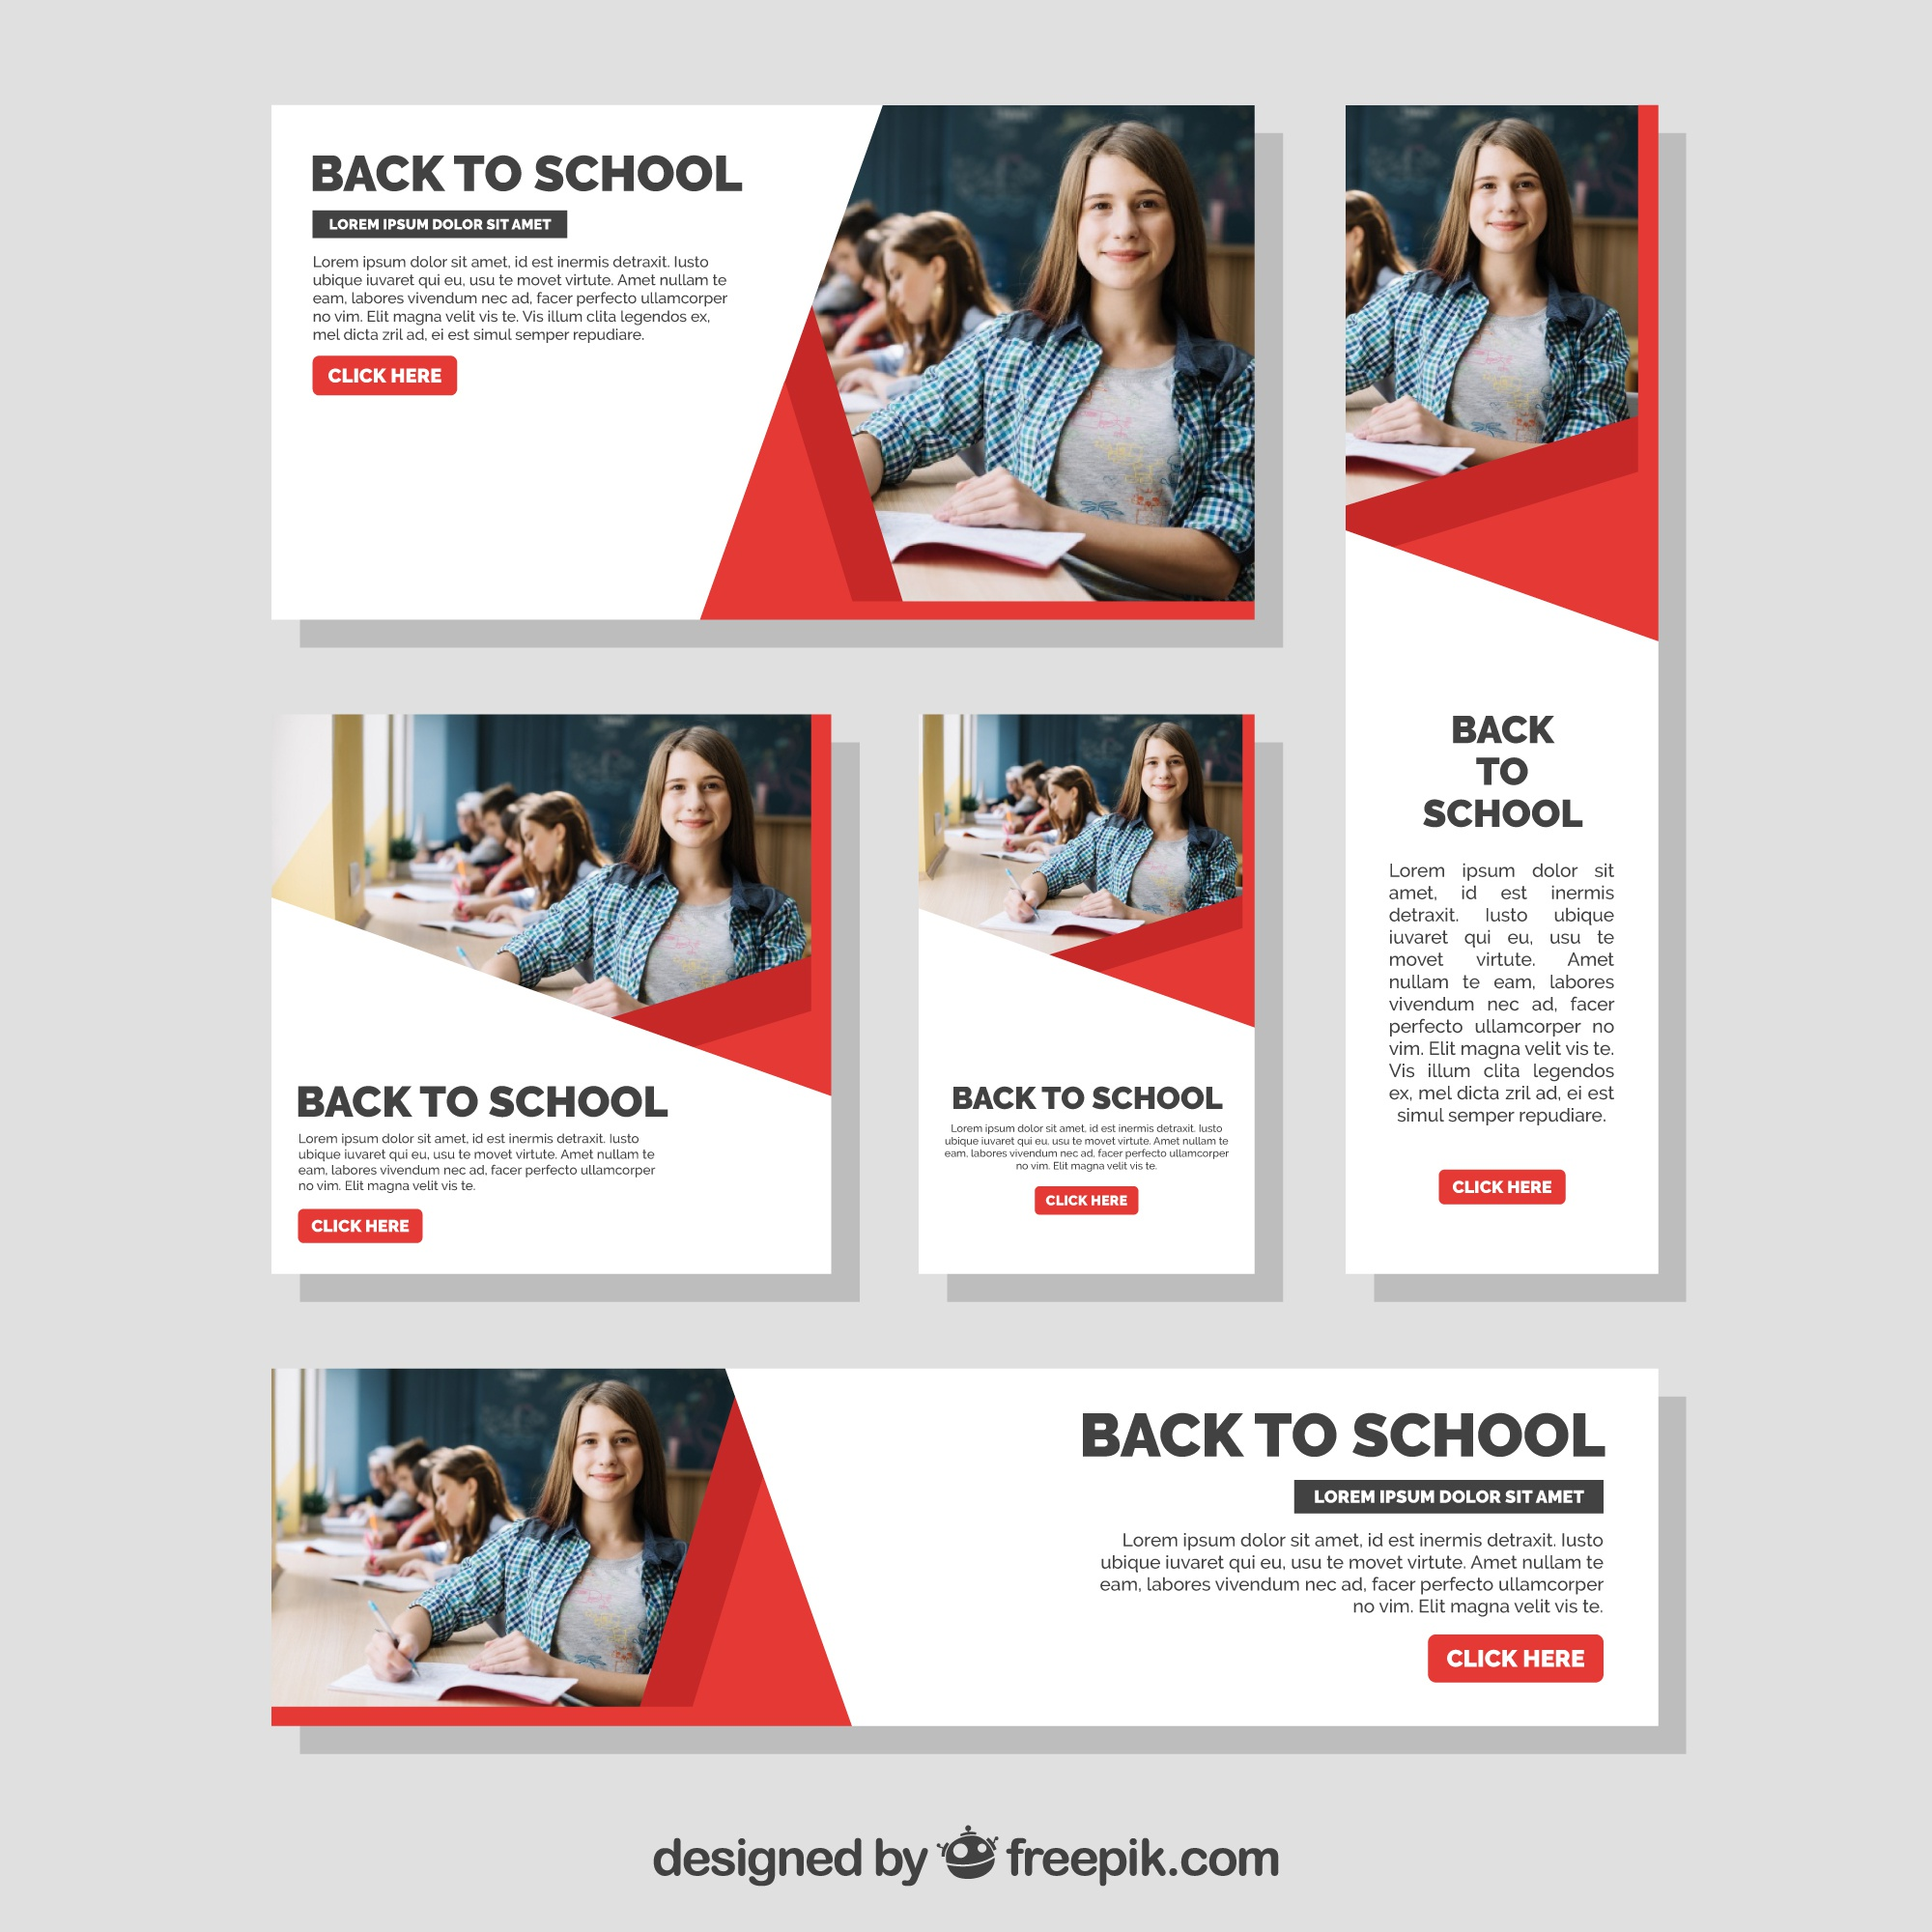 Back to school web banners collection with photo